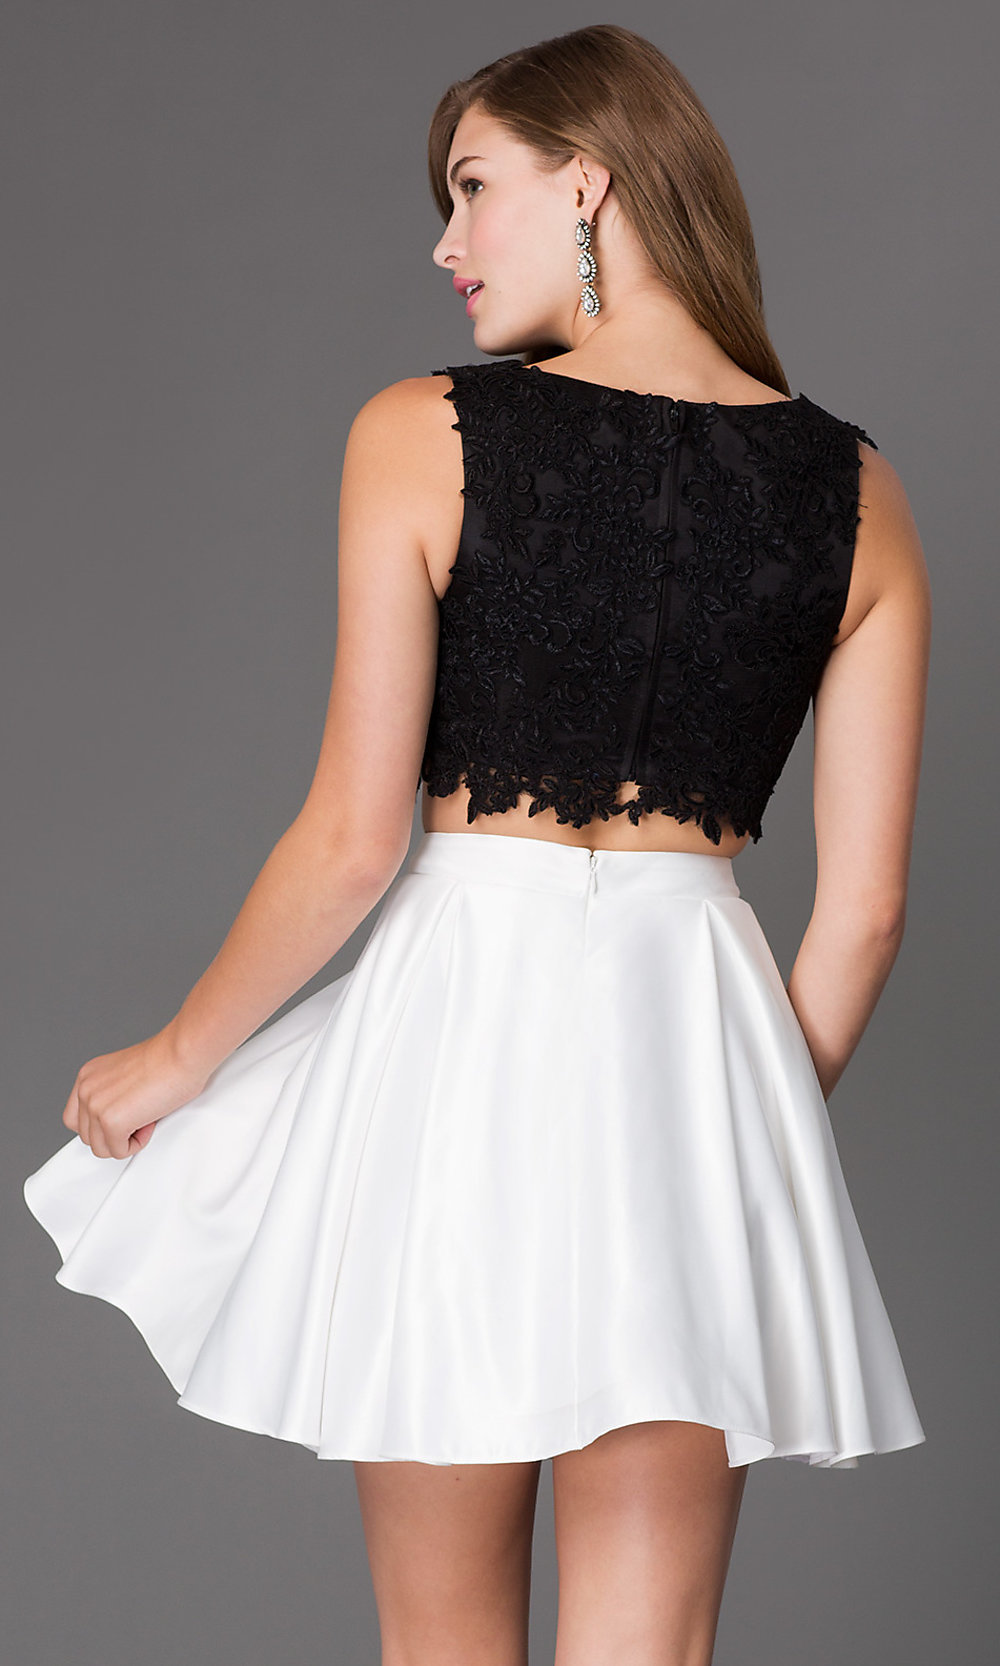 Short Two Piece Lace Bodice Dress Promgirl